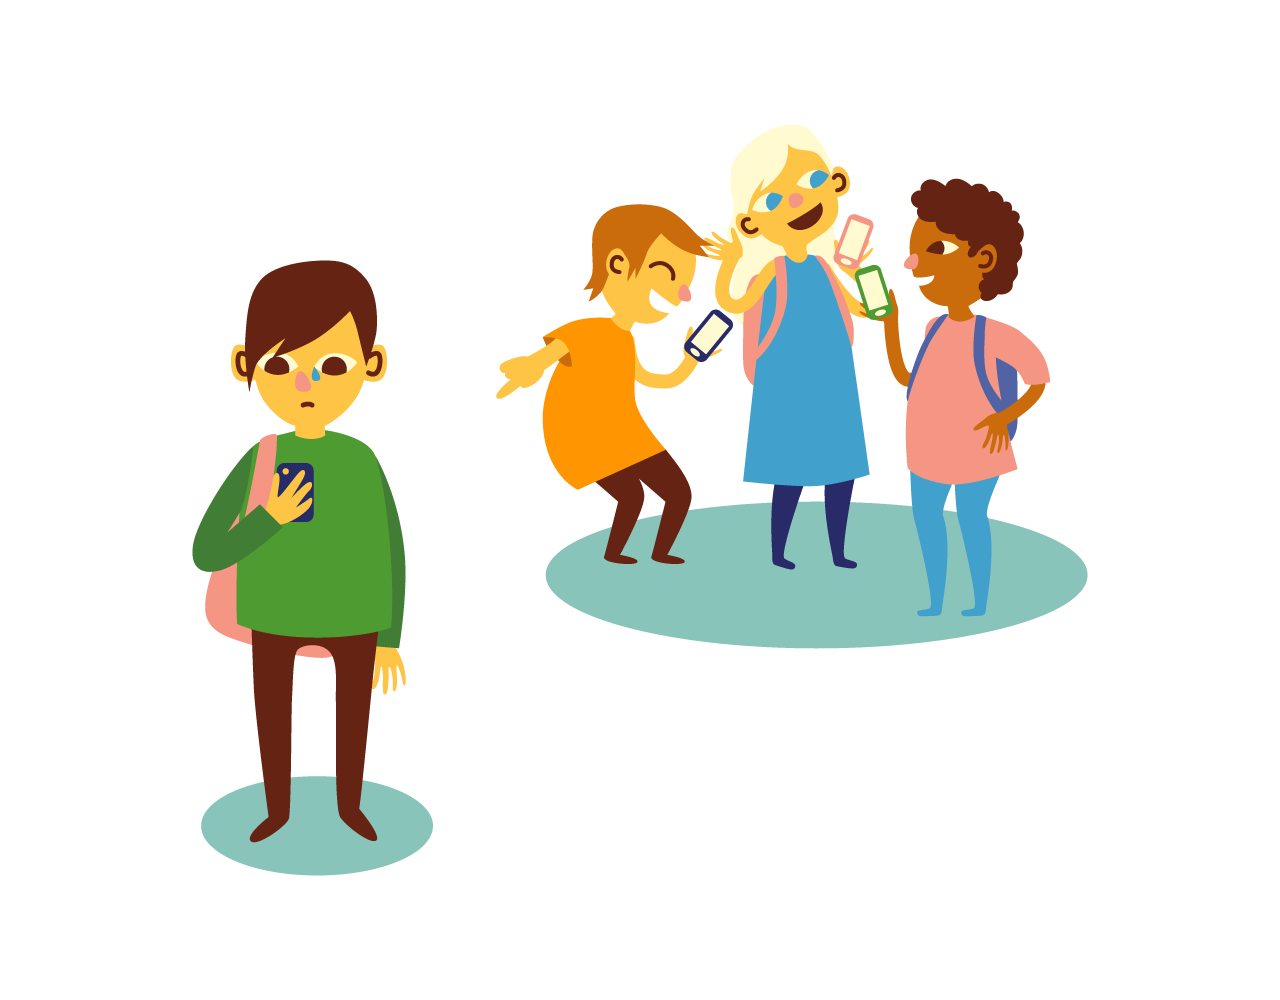 Bullying drawing kid. Bully clipart home end